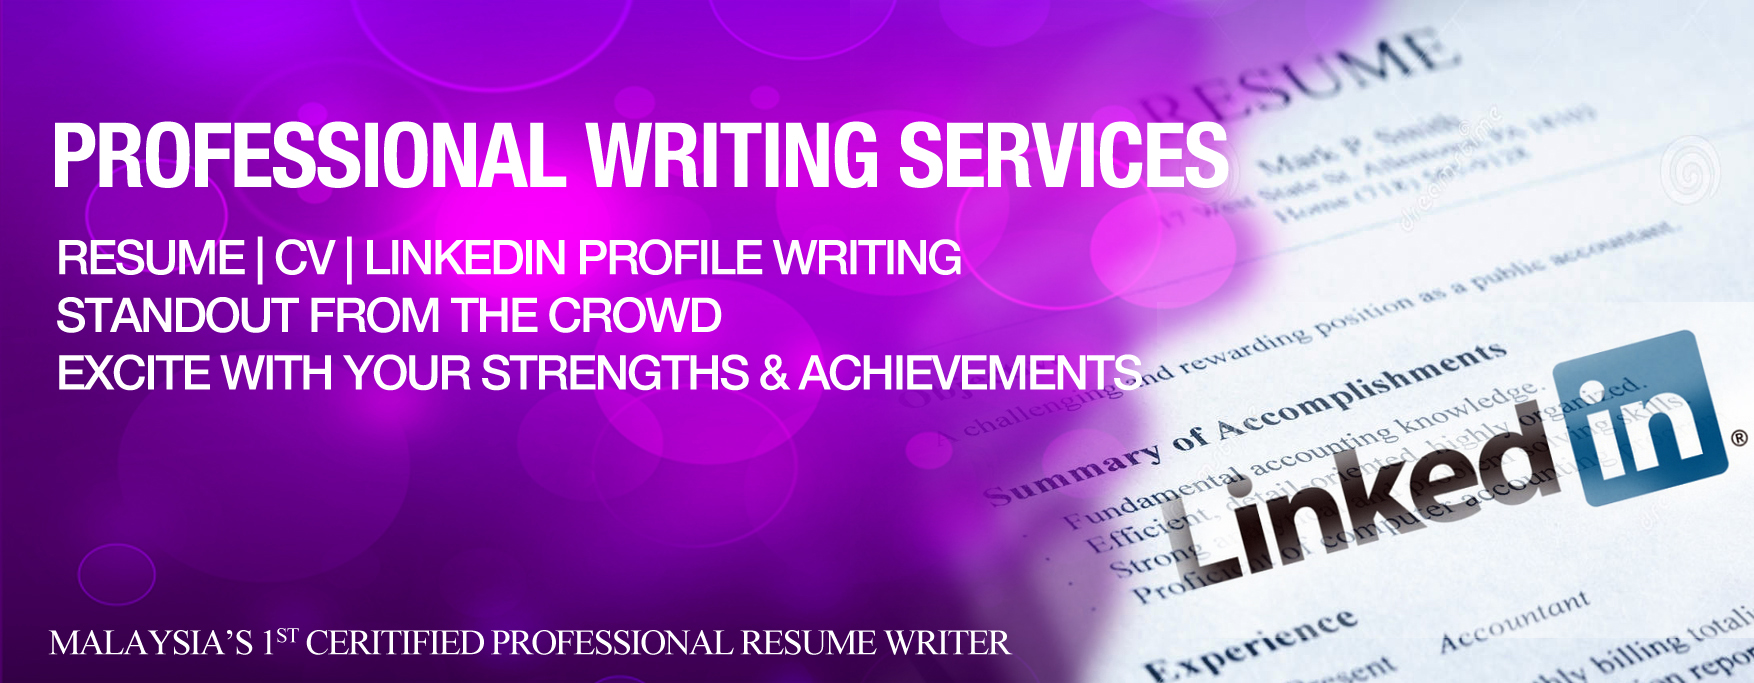 Writing Services Page